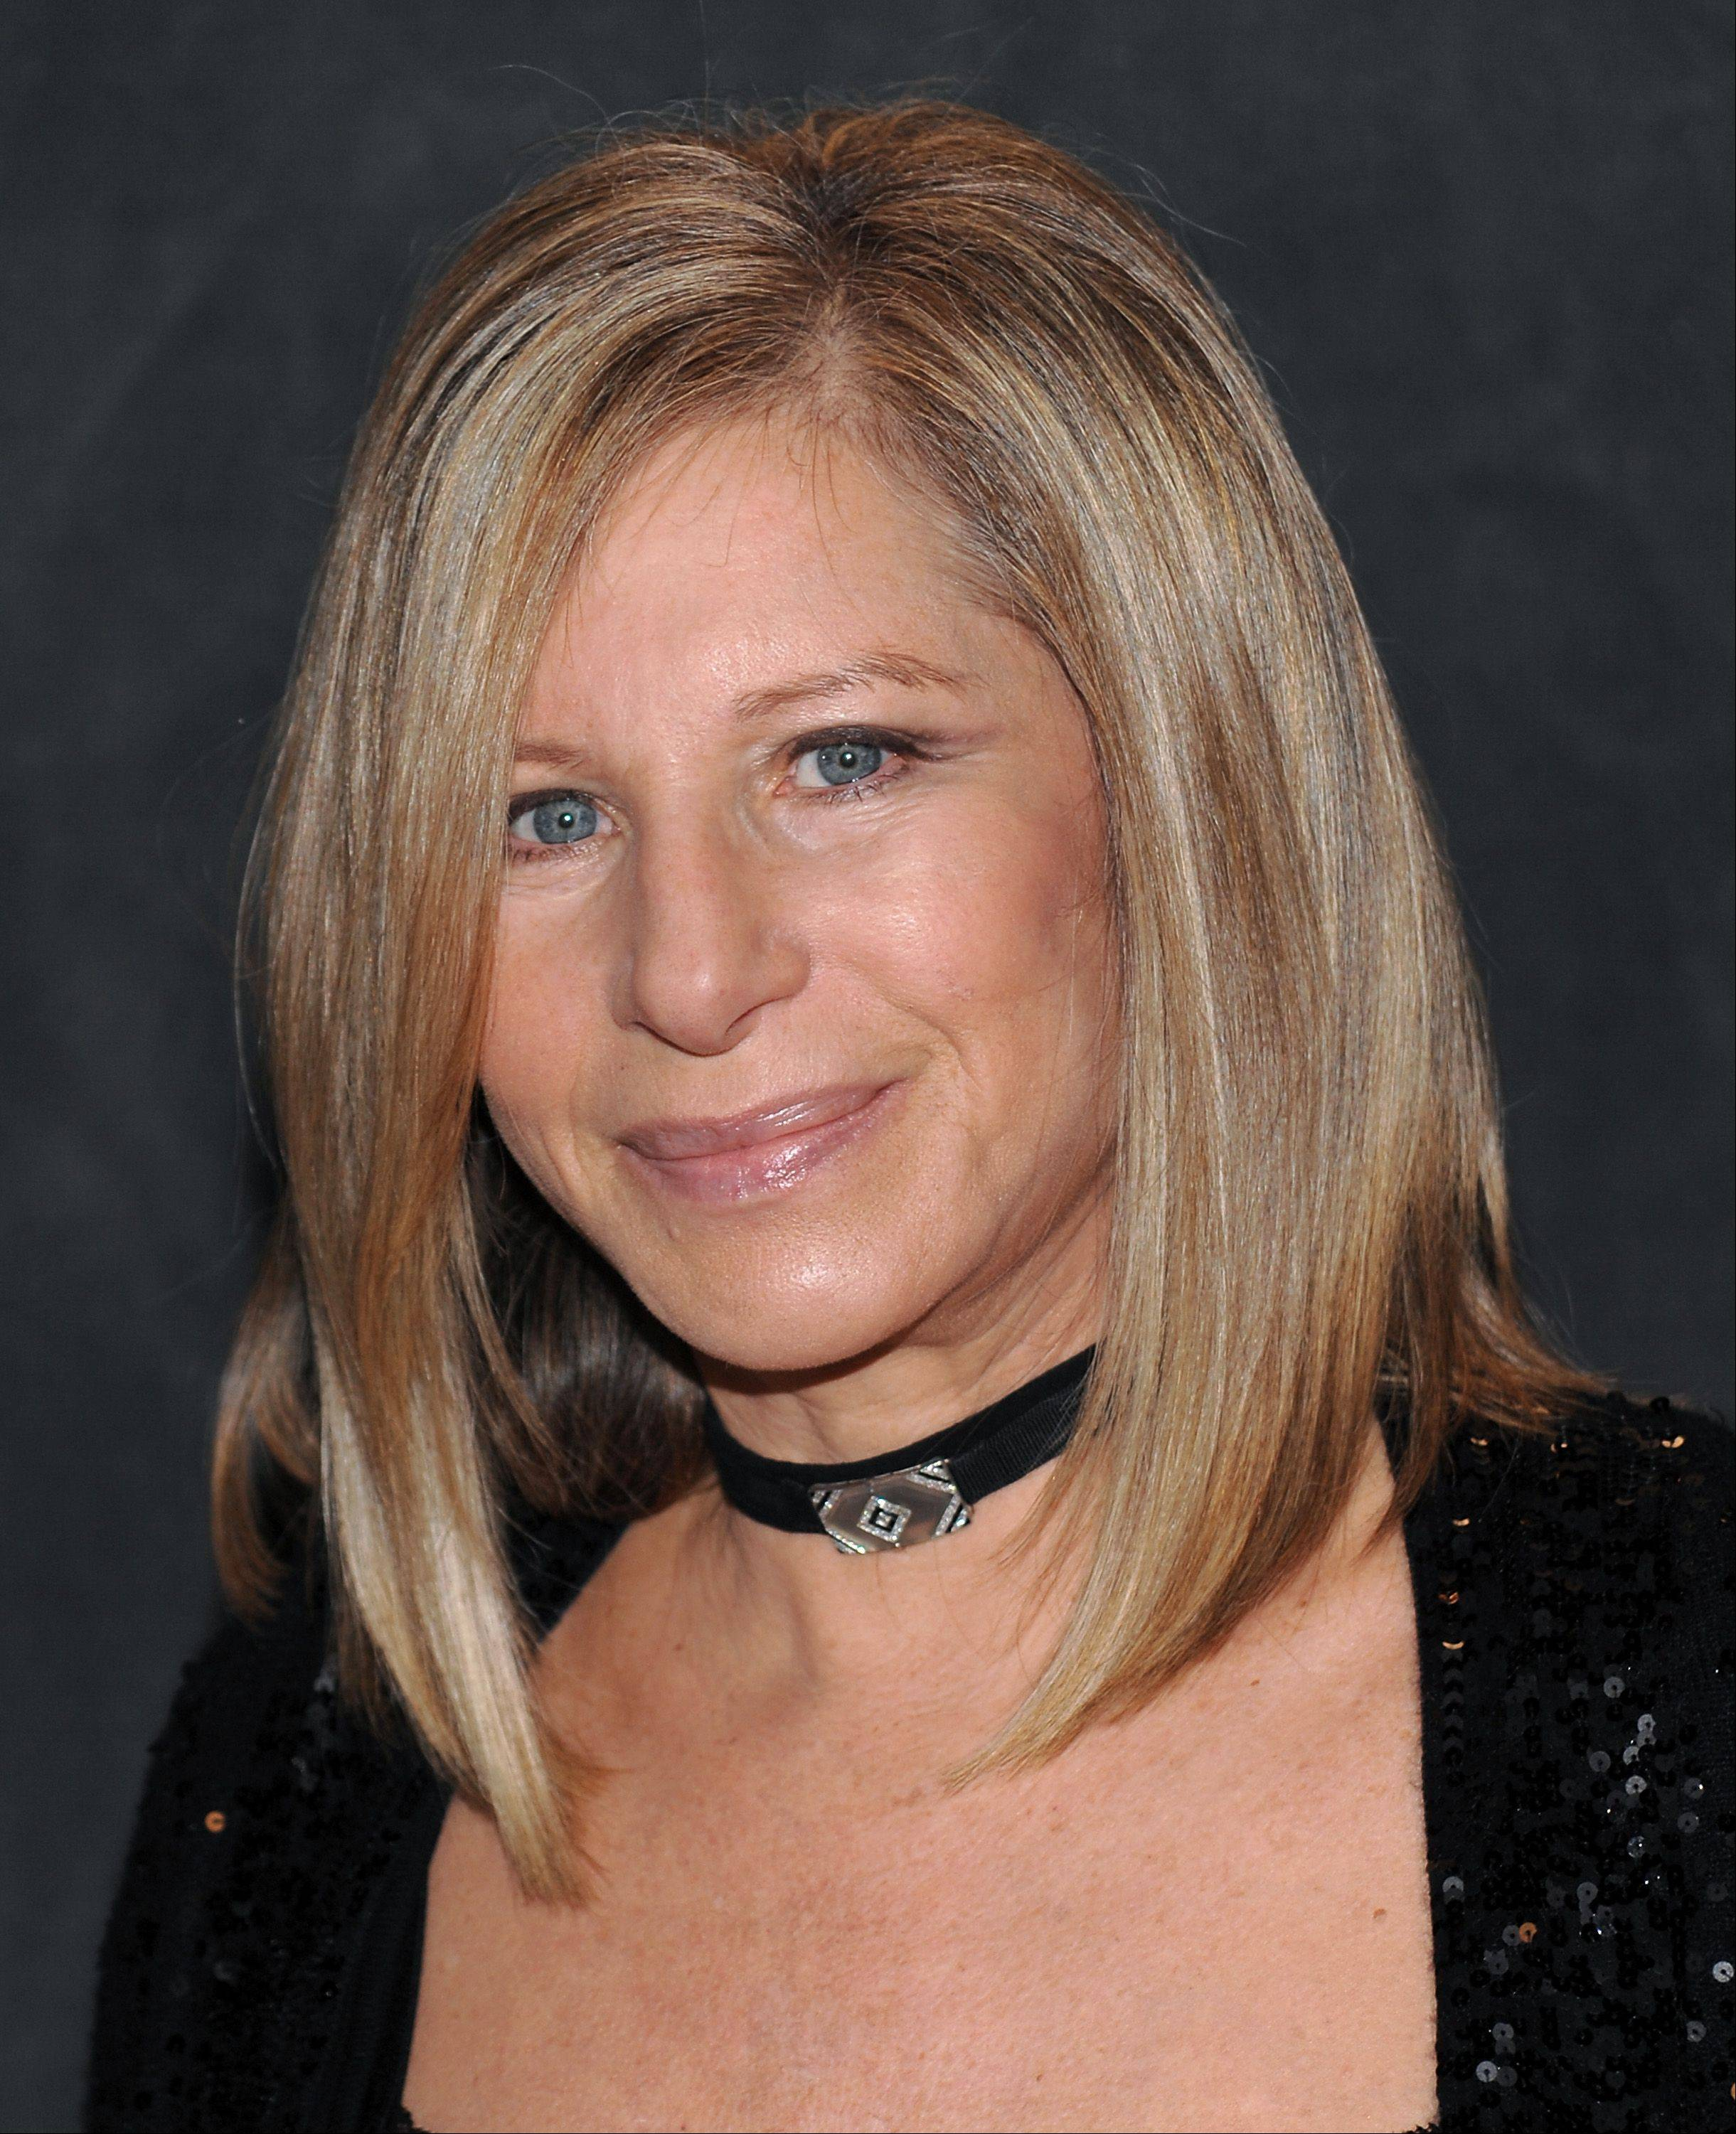 Superstar Barbra Streisand headlines Chicago's United Center on Friday, Oct. 26.